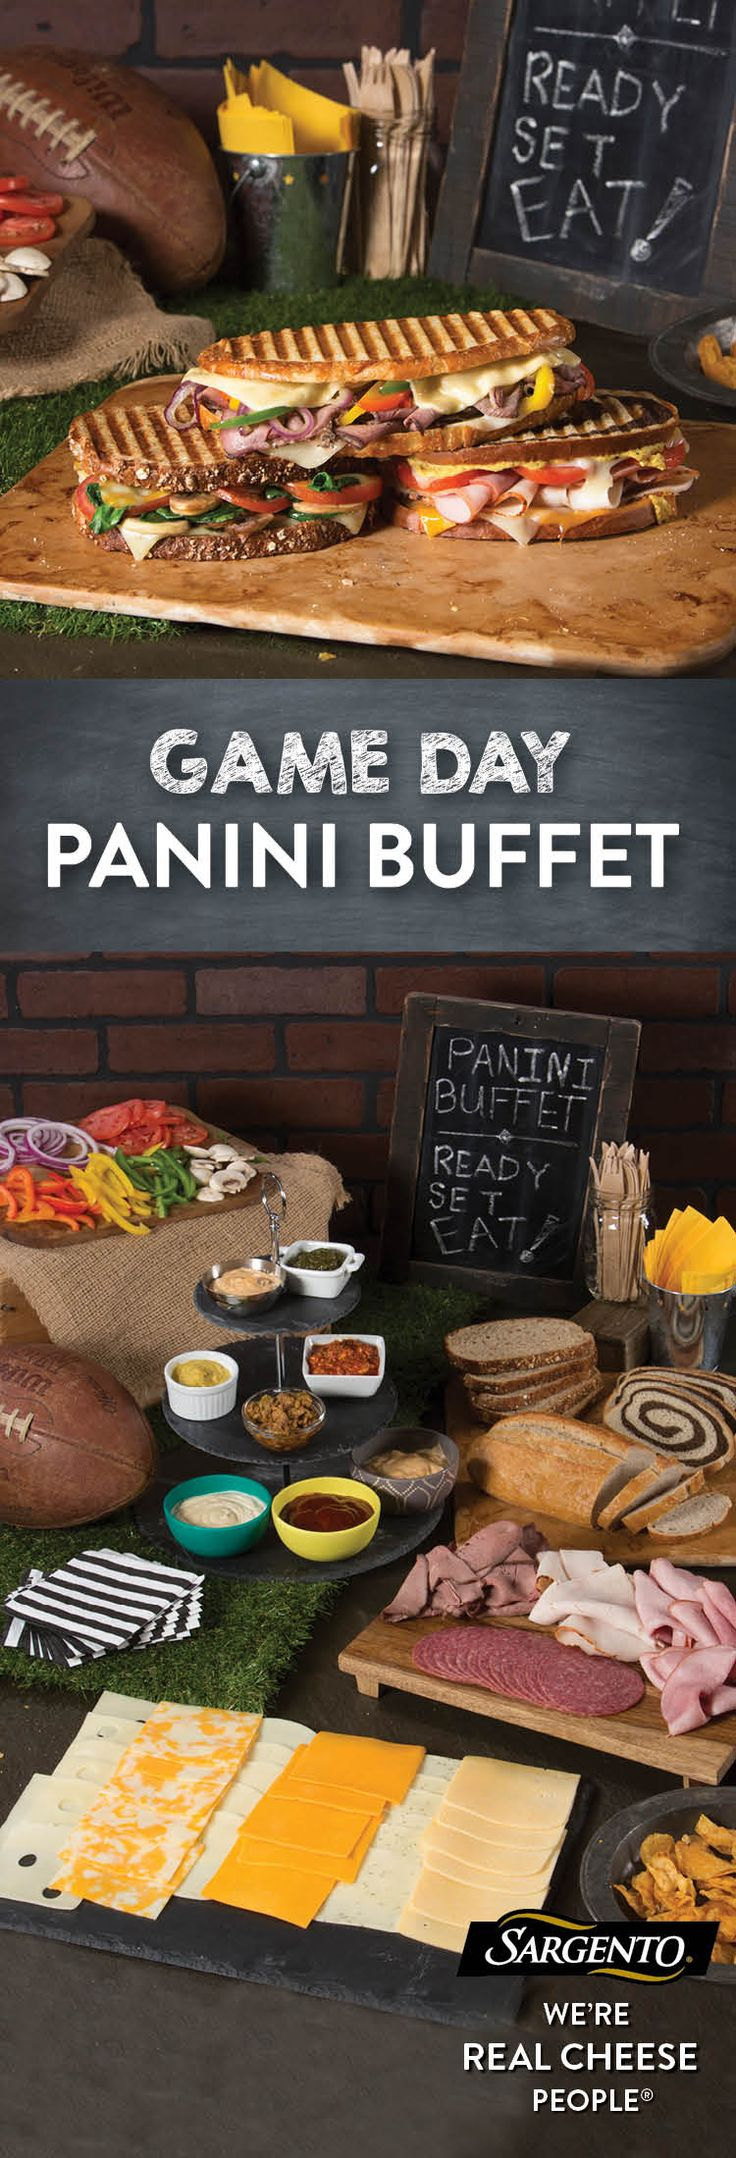 Up your Game Day game with a feast that's sure to surprise your guests. When it comes to football party food, you'll want your guests to have a supply of tasty noshes. This buffet combines the snack-like smorgasbord appeal of a buffet with the decadence of hot, gooey Panini. With our vast variety of 100% real, natural cheese slices, which range from traditional flavors like Mozzarella and Sharp Cheddar to innovations like Garlic and Herb Jack, there's no end to the combinations you can…